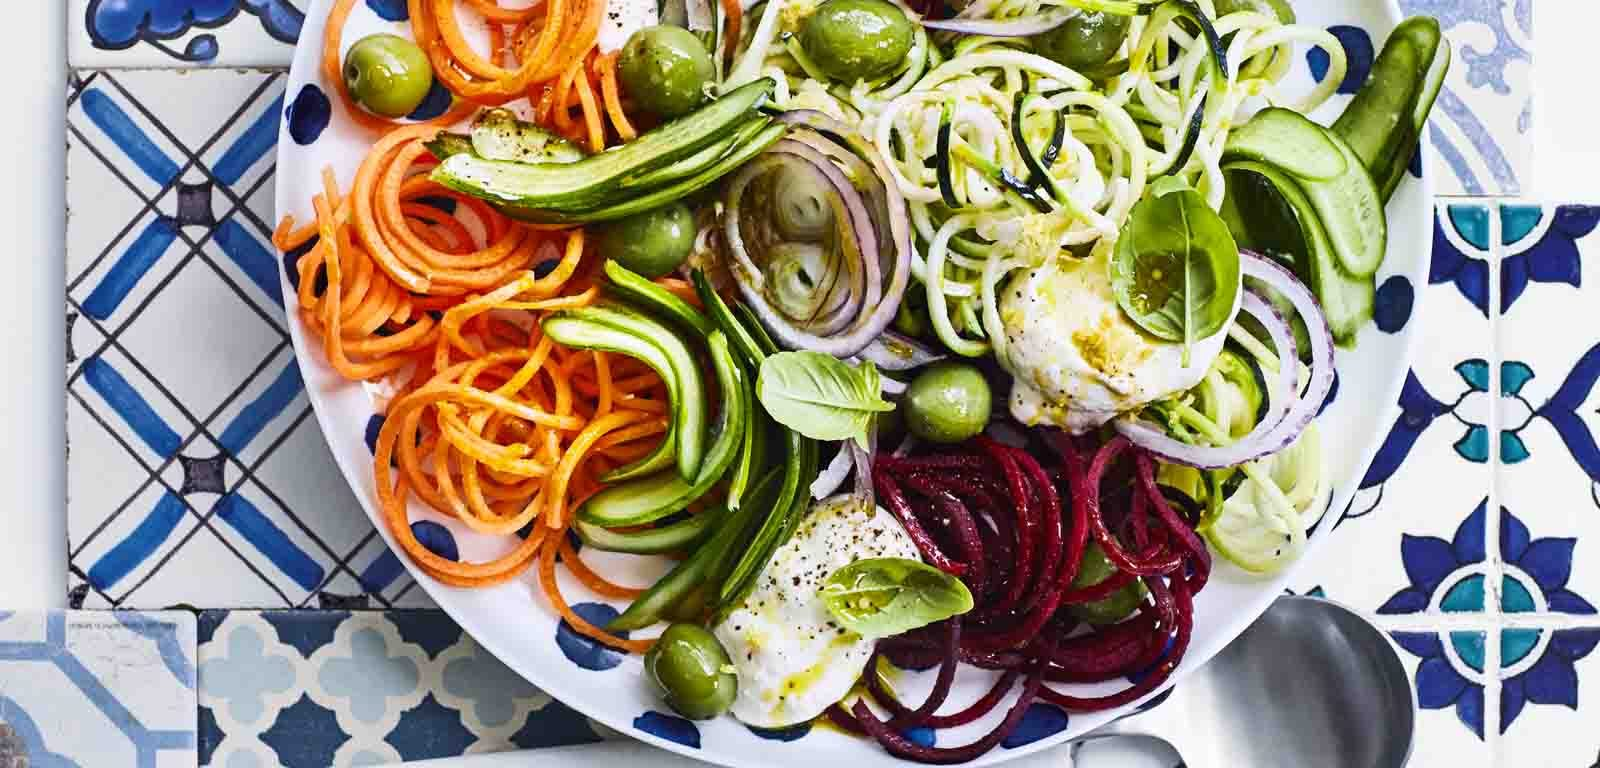 Mediterranean-Style Salad with Raw Vegetable Noodles.